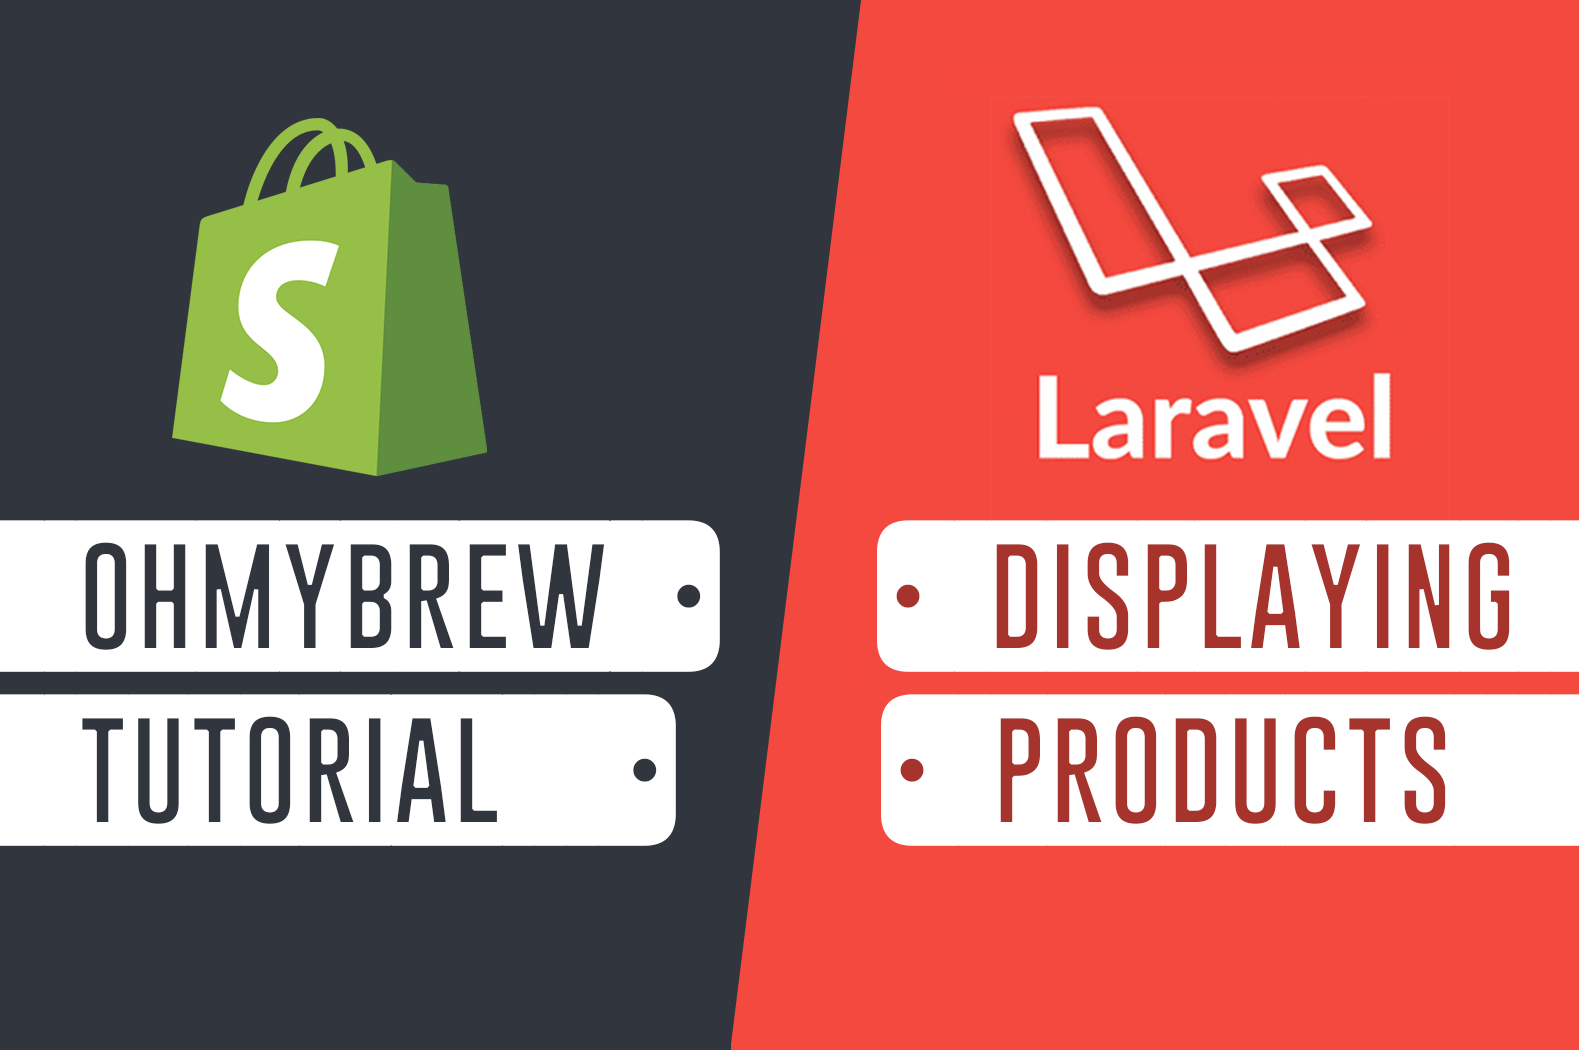 Shopify App Development with Laravel and Ohmybrew - Displaying Productspng